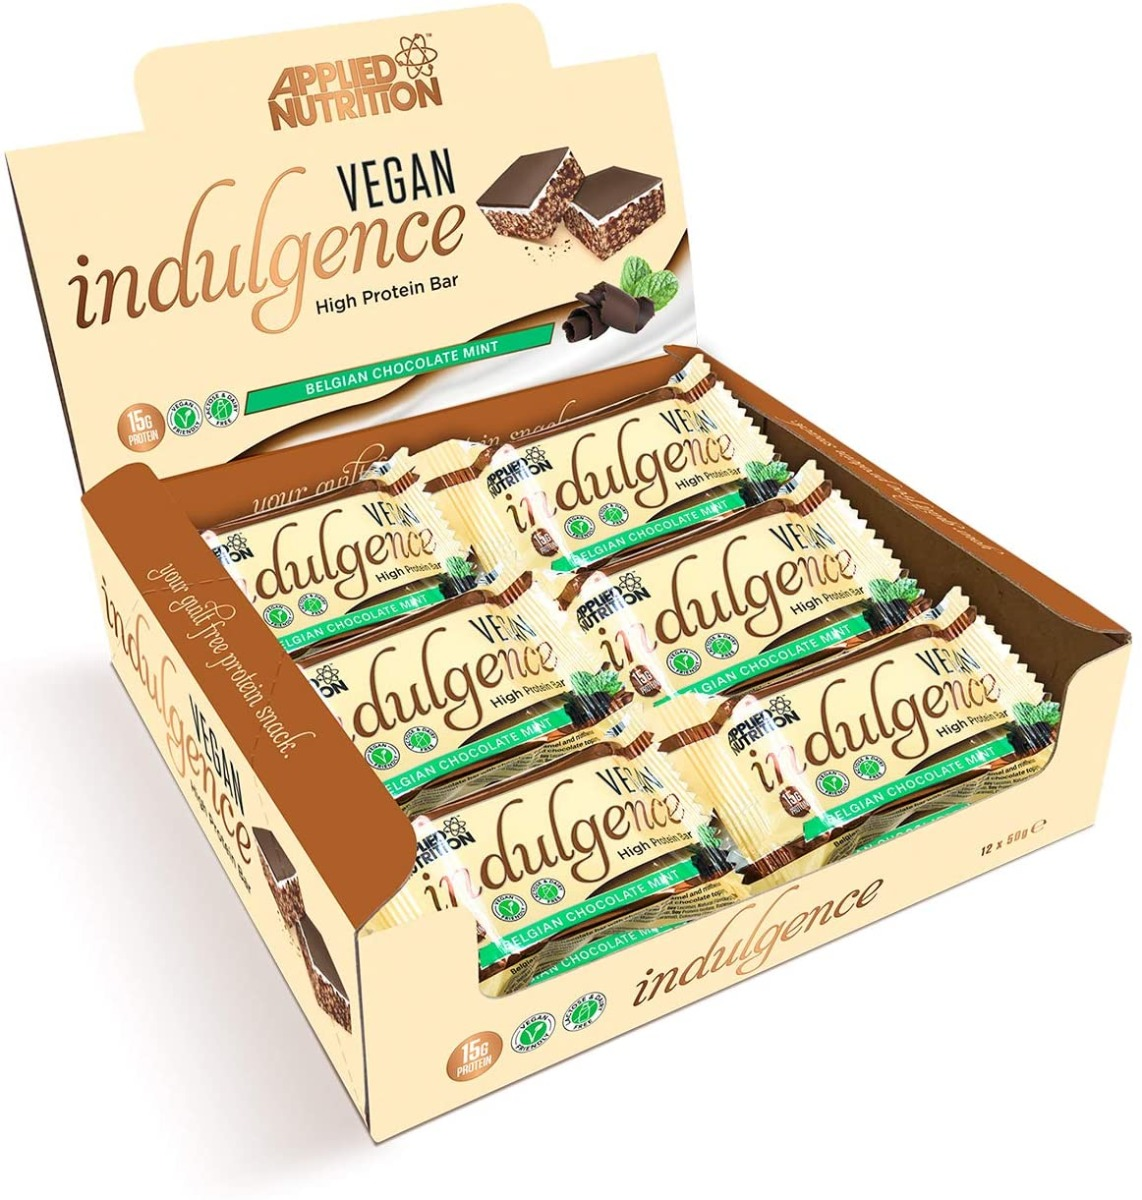 *short Dated* Vegan Indulgence High Protein Bar 12 Bars - Belgian Choc Mint (bbe 12/2020) Low Price Applied Nutrition